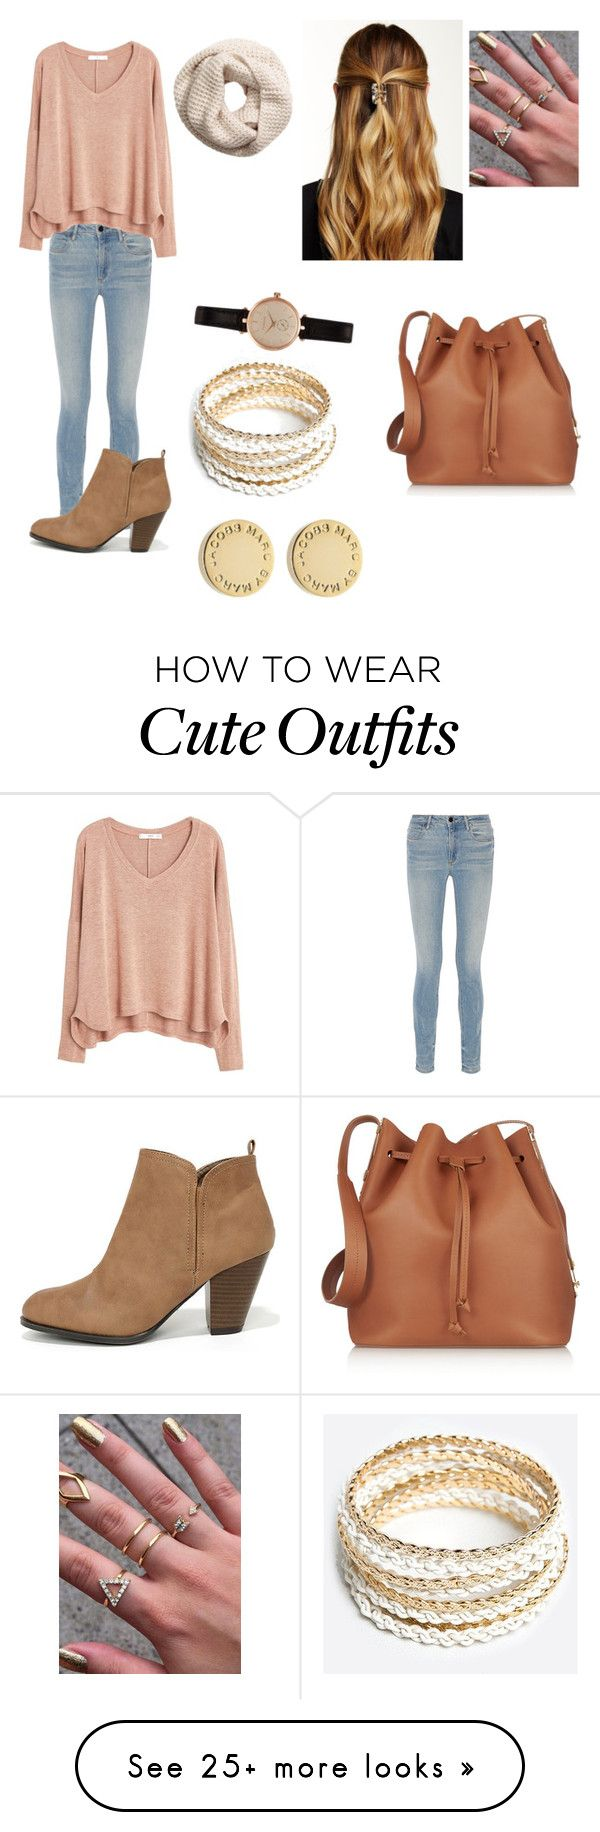 """A cute school outfit"" by nialler5595 on Polyvore featuring Alexander Wang, MANGO, Qupid, Natasha Accessories, H&M, Barbour, Marc by Marc Jacobs, ZooShoo and Sophie Hulme"